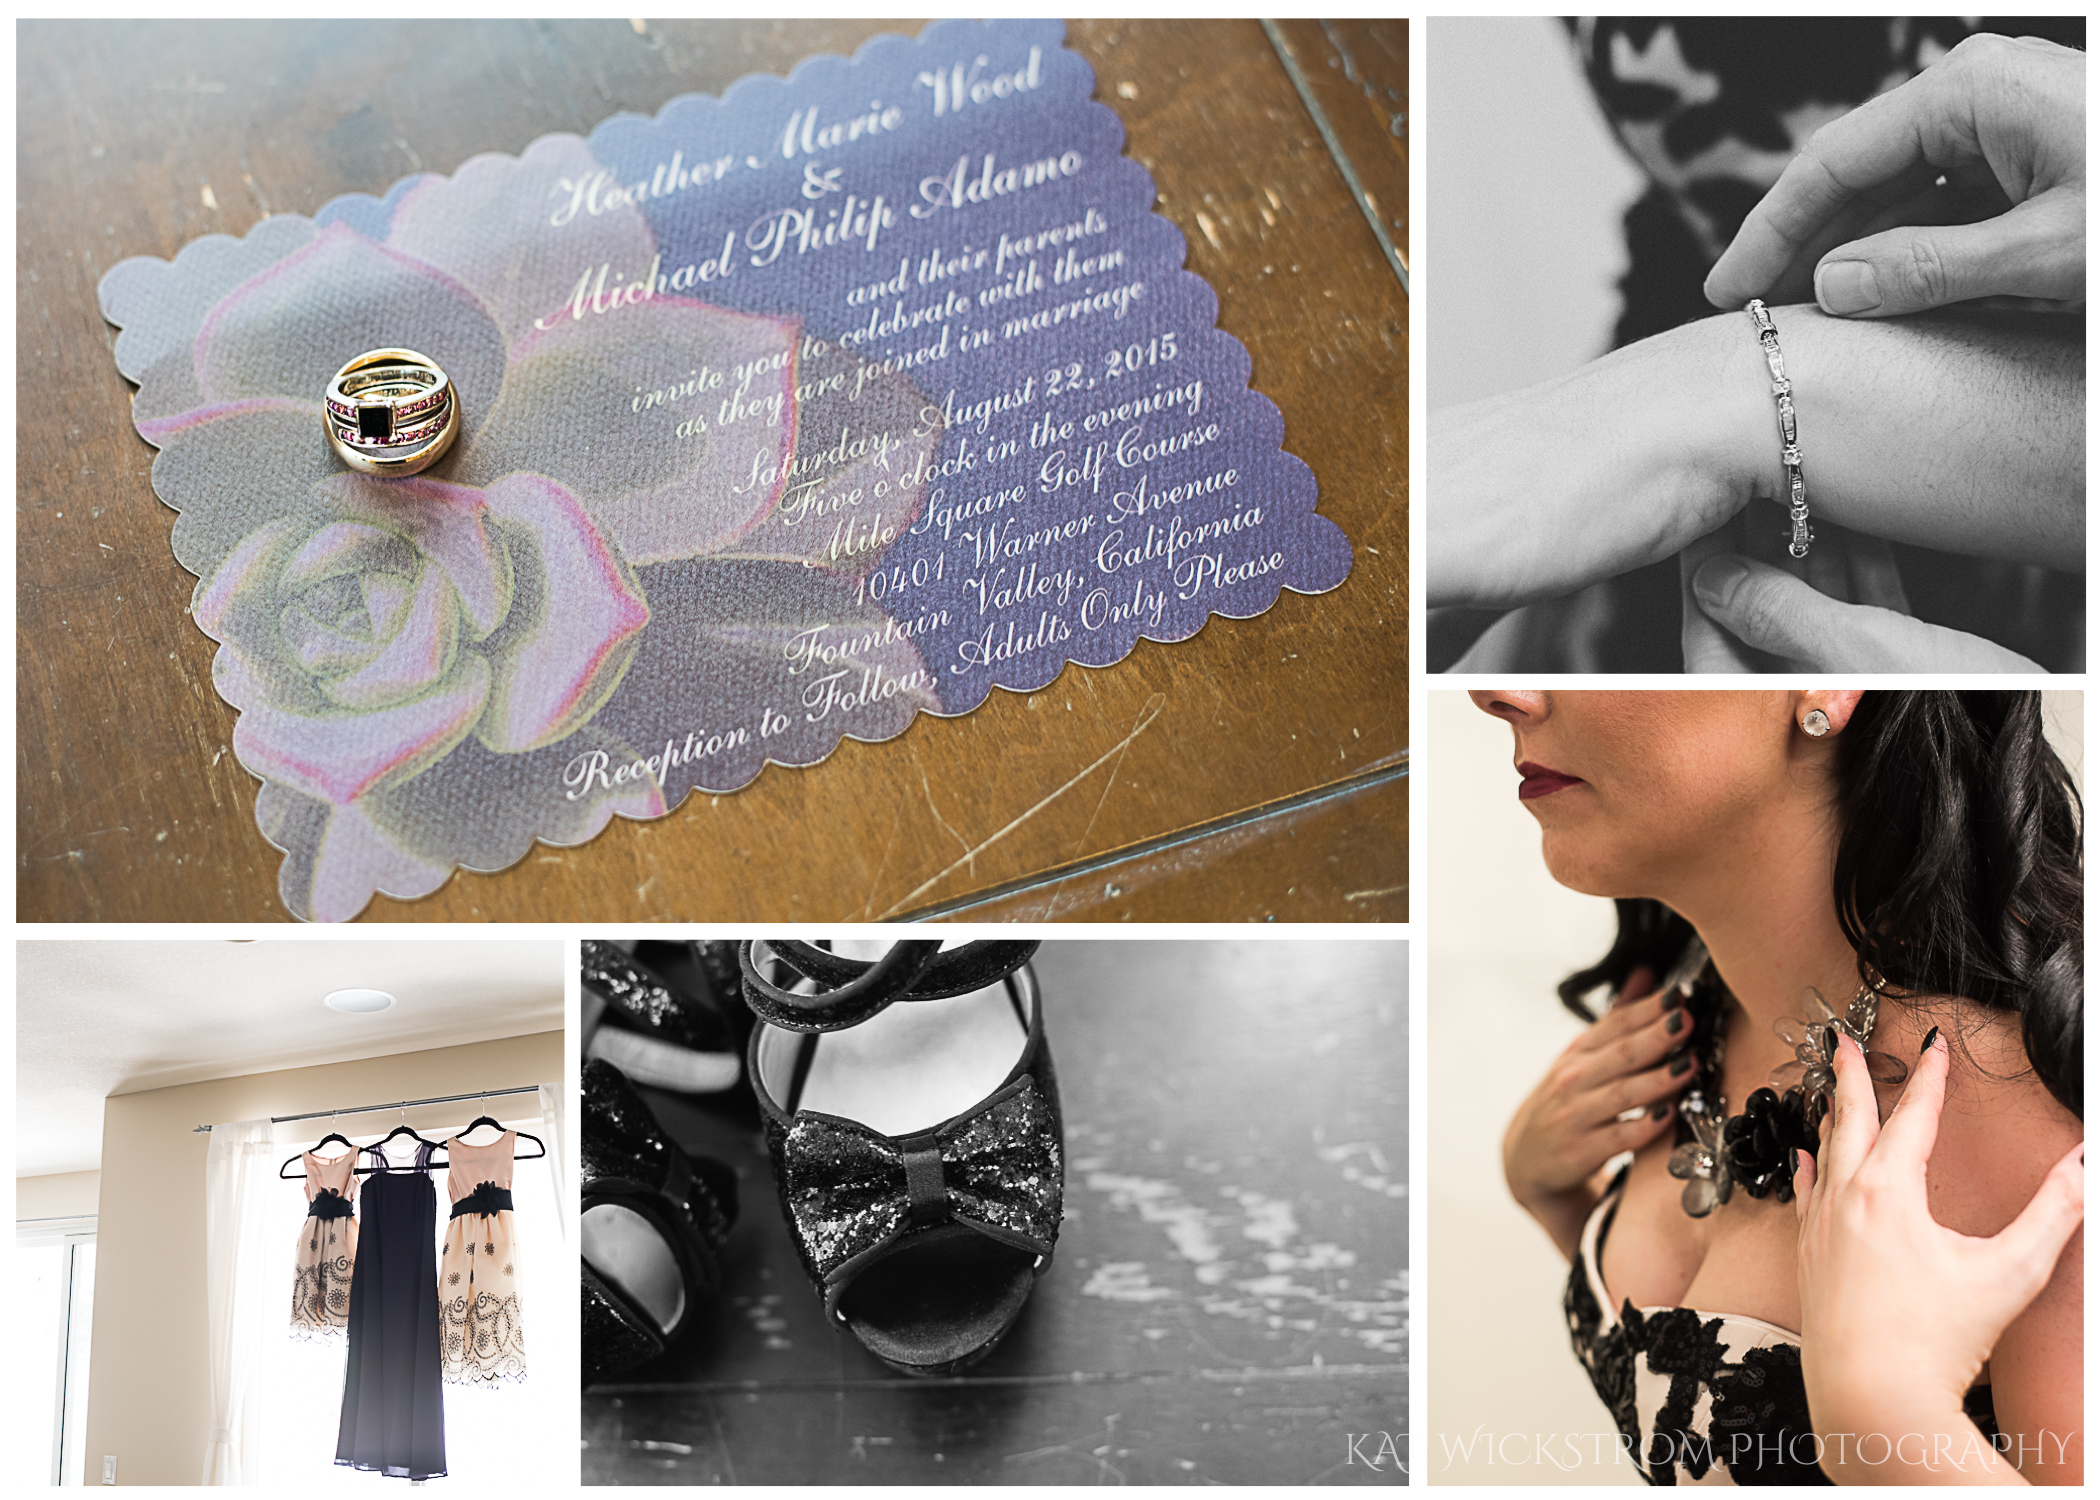 Heather had a gorgeous dark purple engagement ring, black sparkly shoes, and wonderful dark jewelry. There were two flower girls and a junior bridesmaid who had adorable outfits of their own.